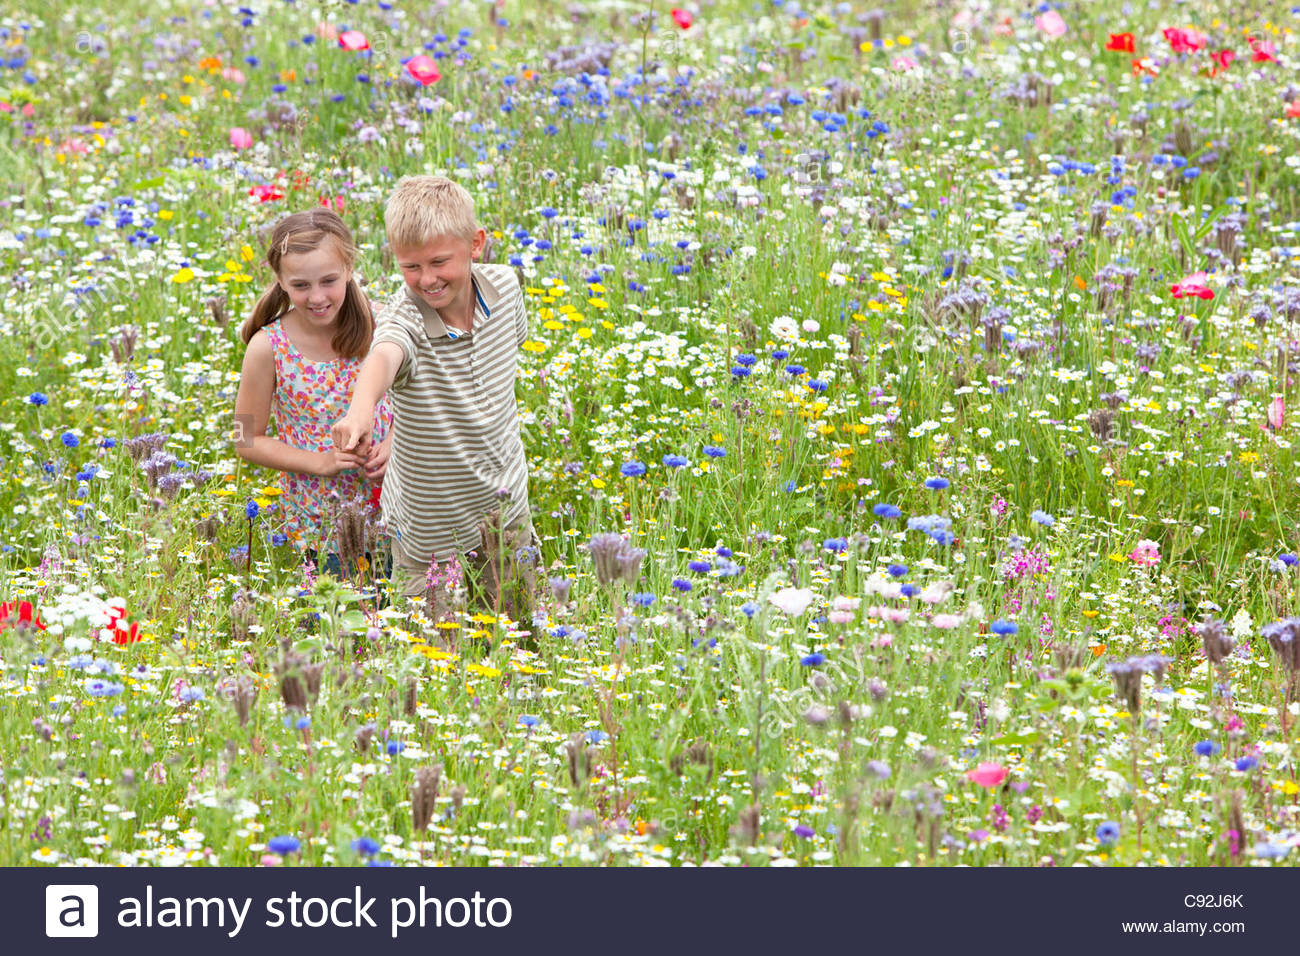 Boy and girl pointing in wildflower field - Stock Image